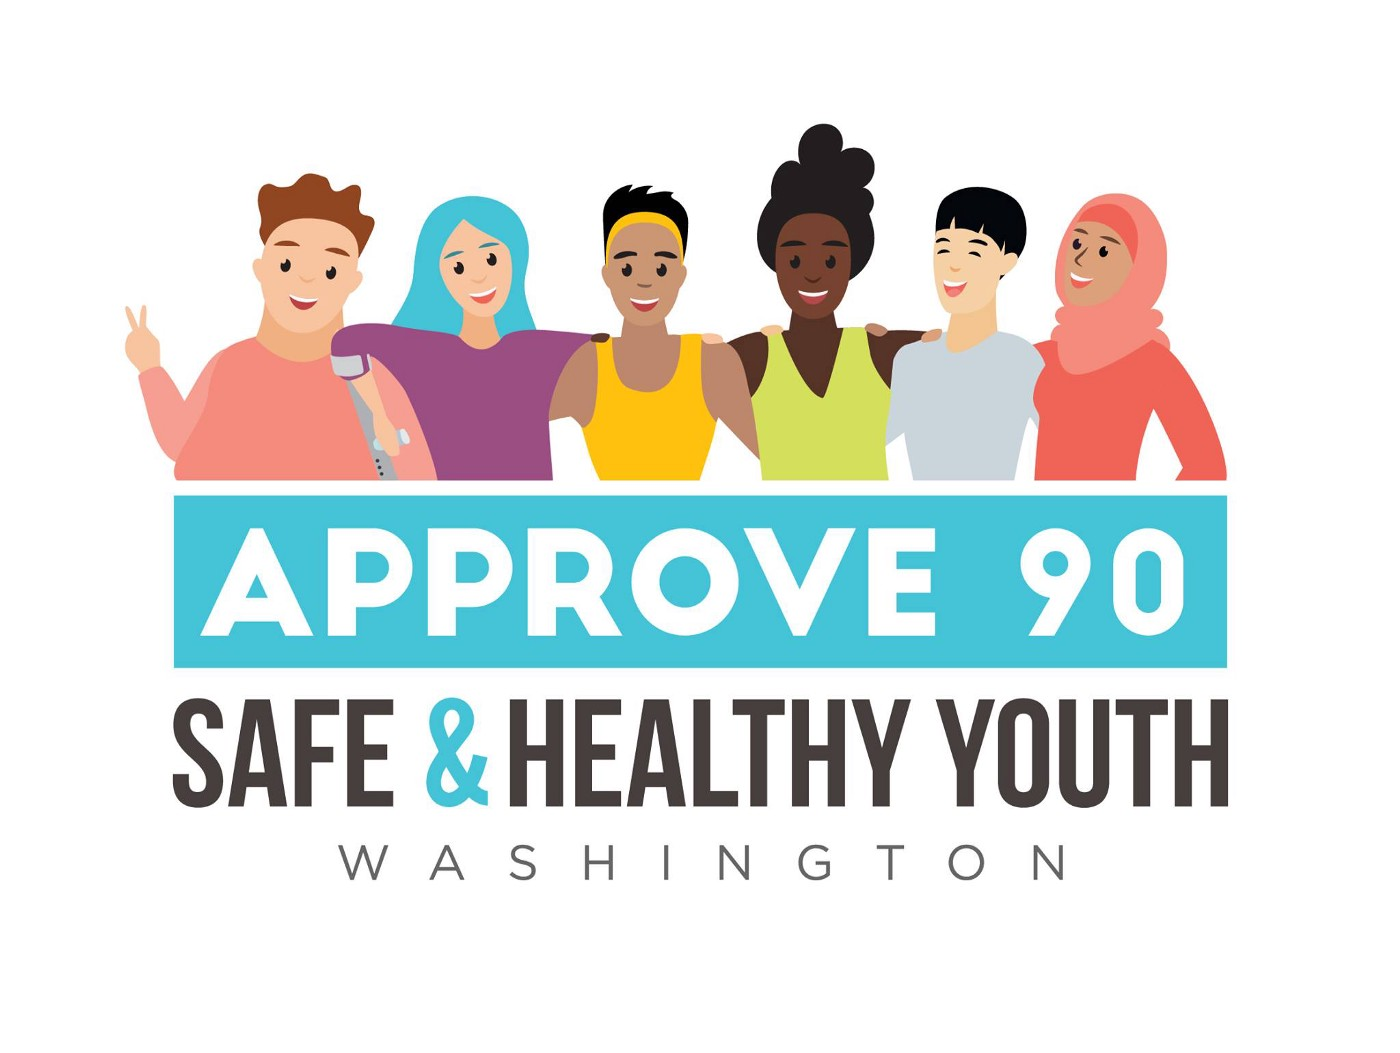 6 people of different races and genders with arms around each other, and the text Approve 90: Safe & Healthy Youth Washington